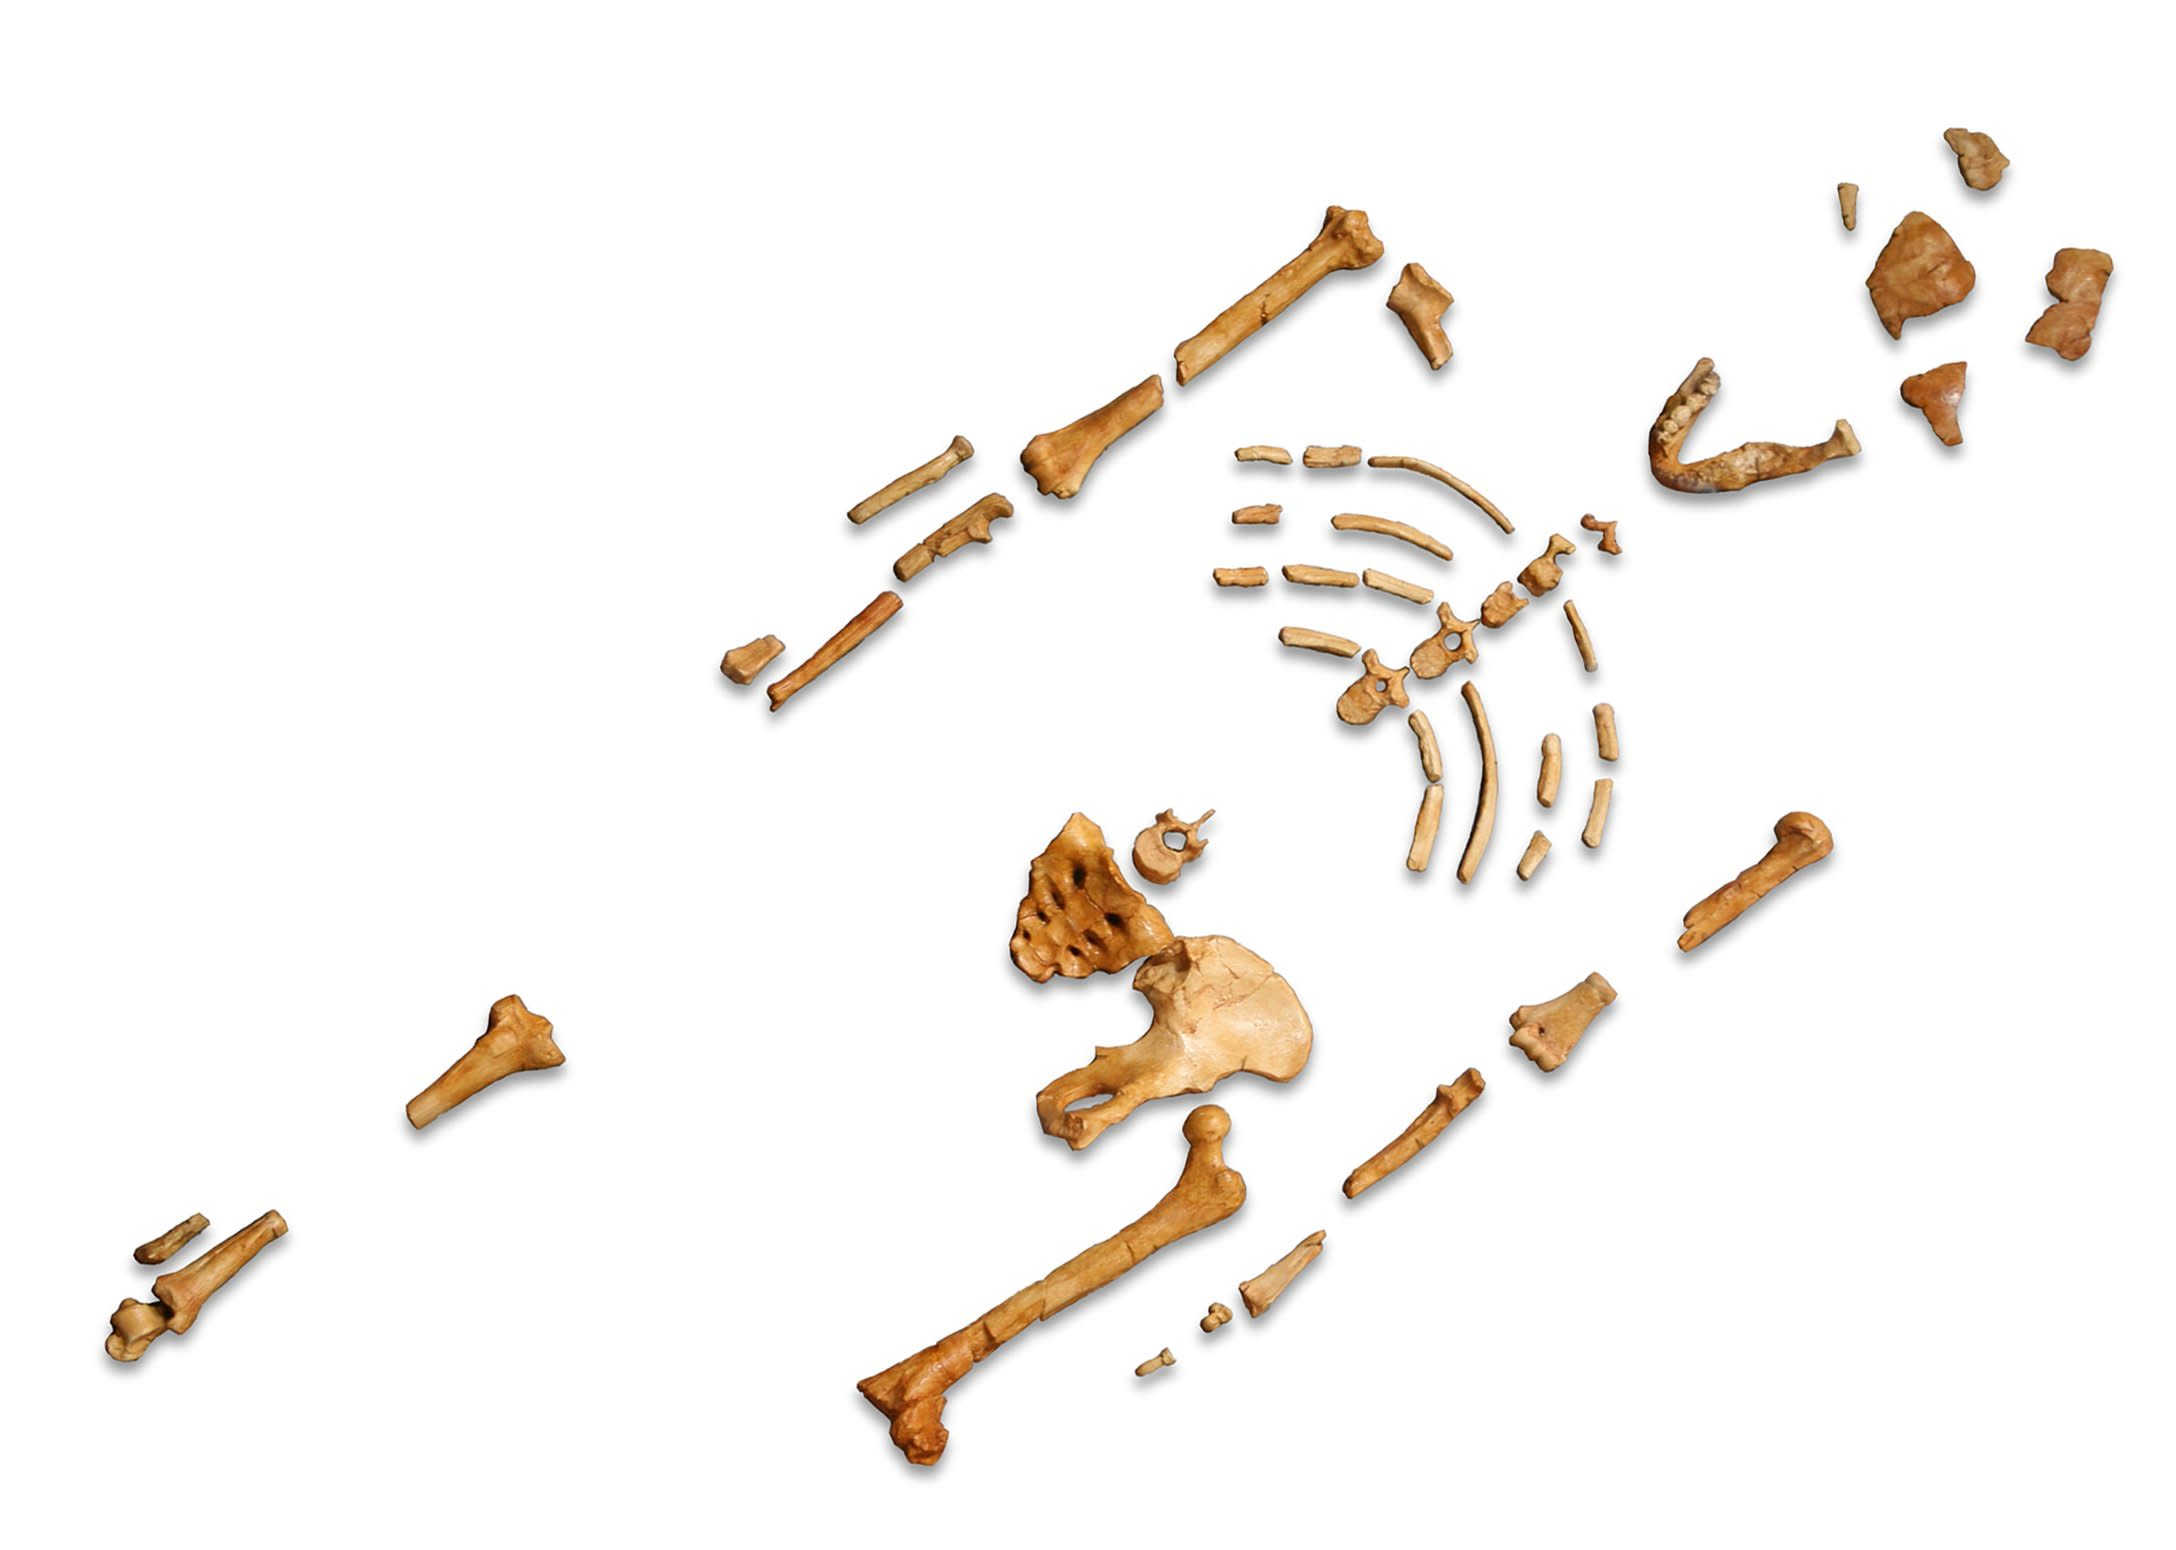 Reconstruction_of_the_fossil_skeleton_of_Lucy_zxlnrt.jpg